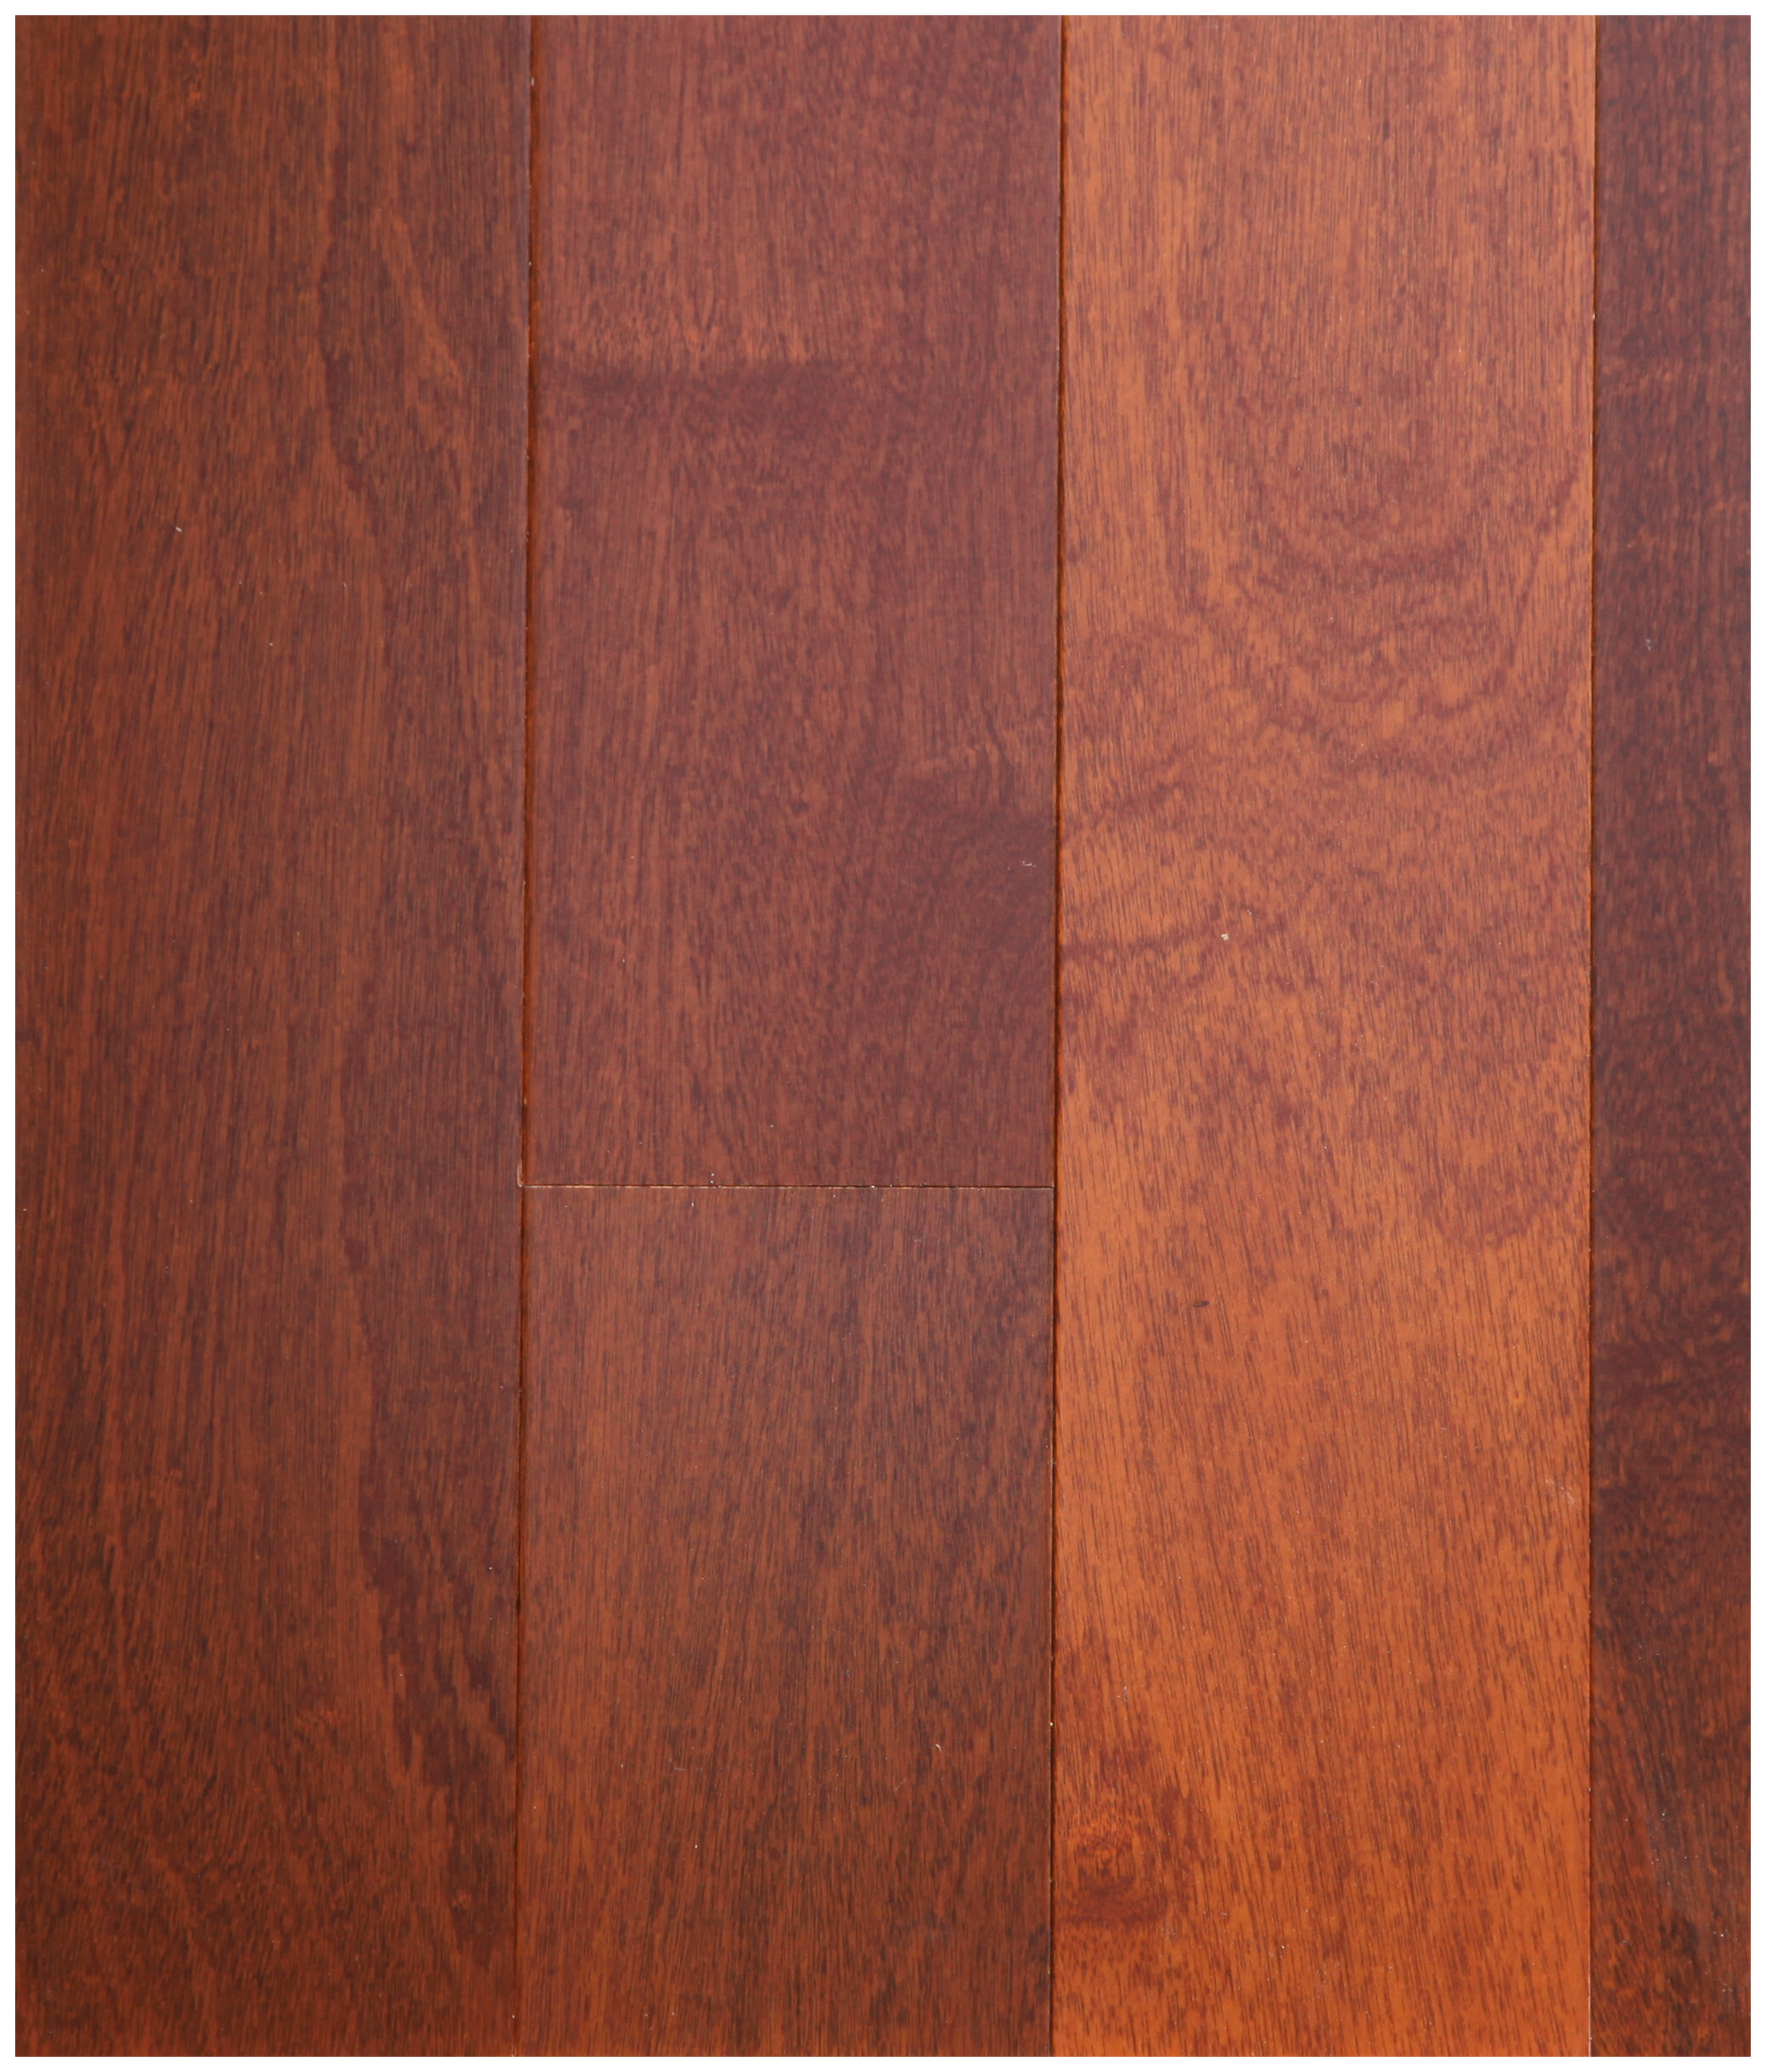 Easoon USA 5 Engineered African Mahogany Hardwood Flooring In Natural